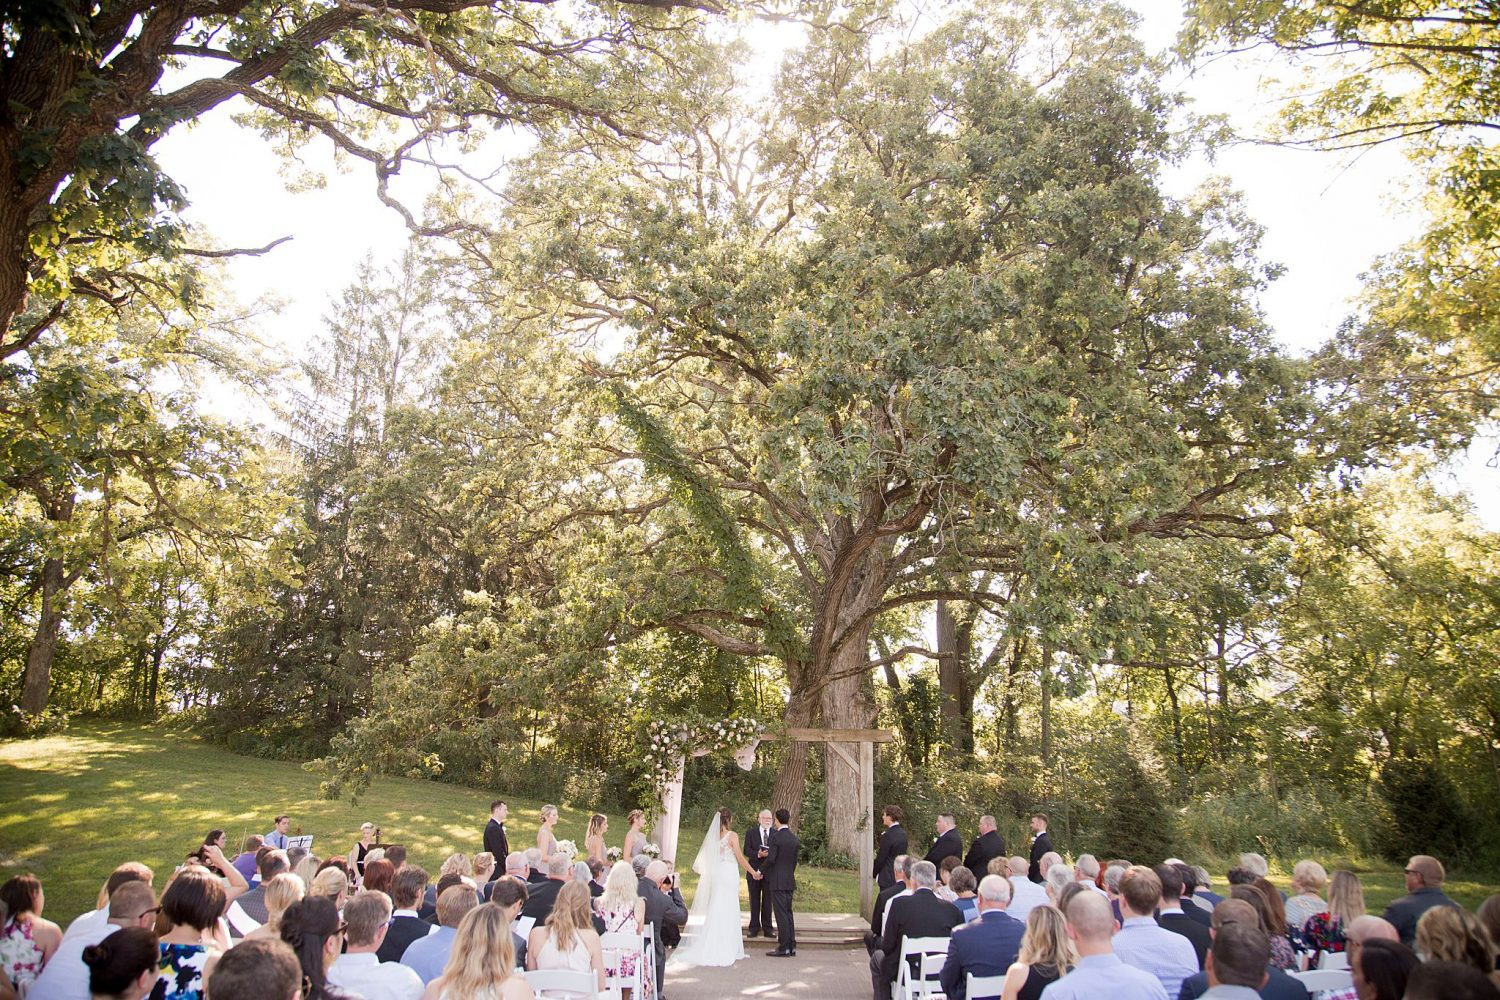 Outdoor summer ceremony under a giant oak tree at Rapid Creek Cidery in Iowa City.